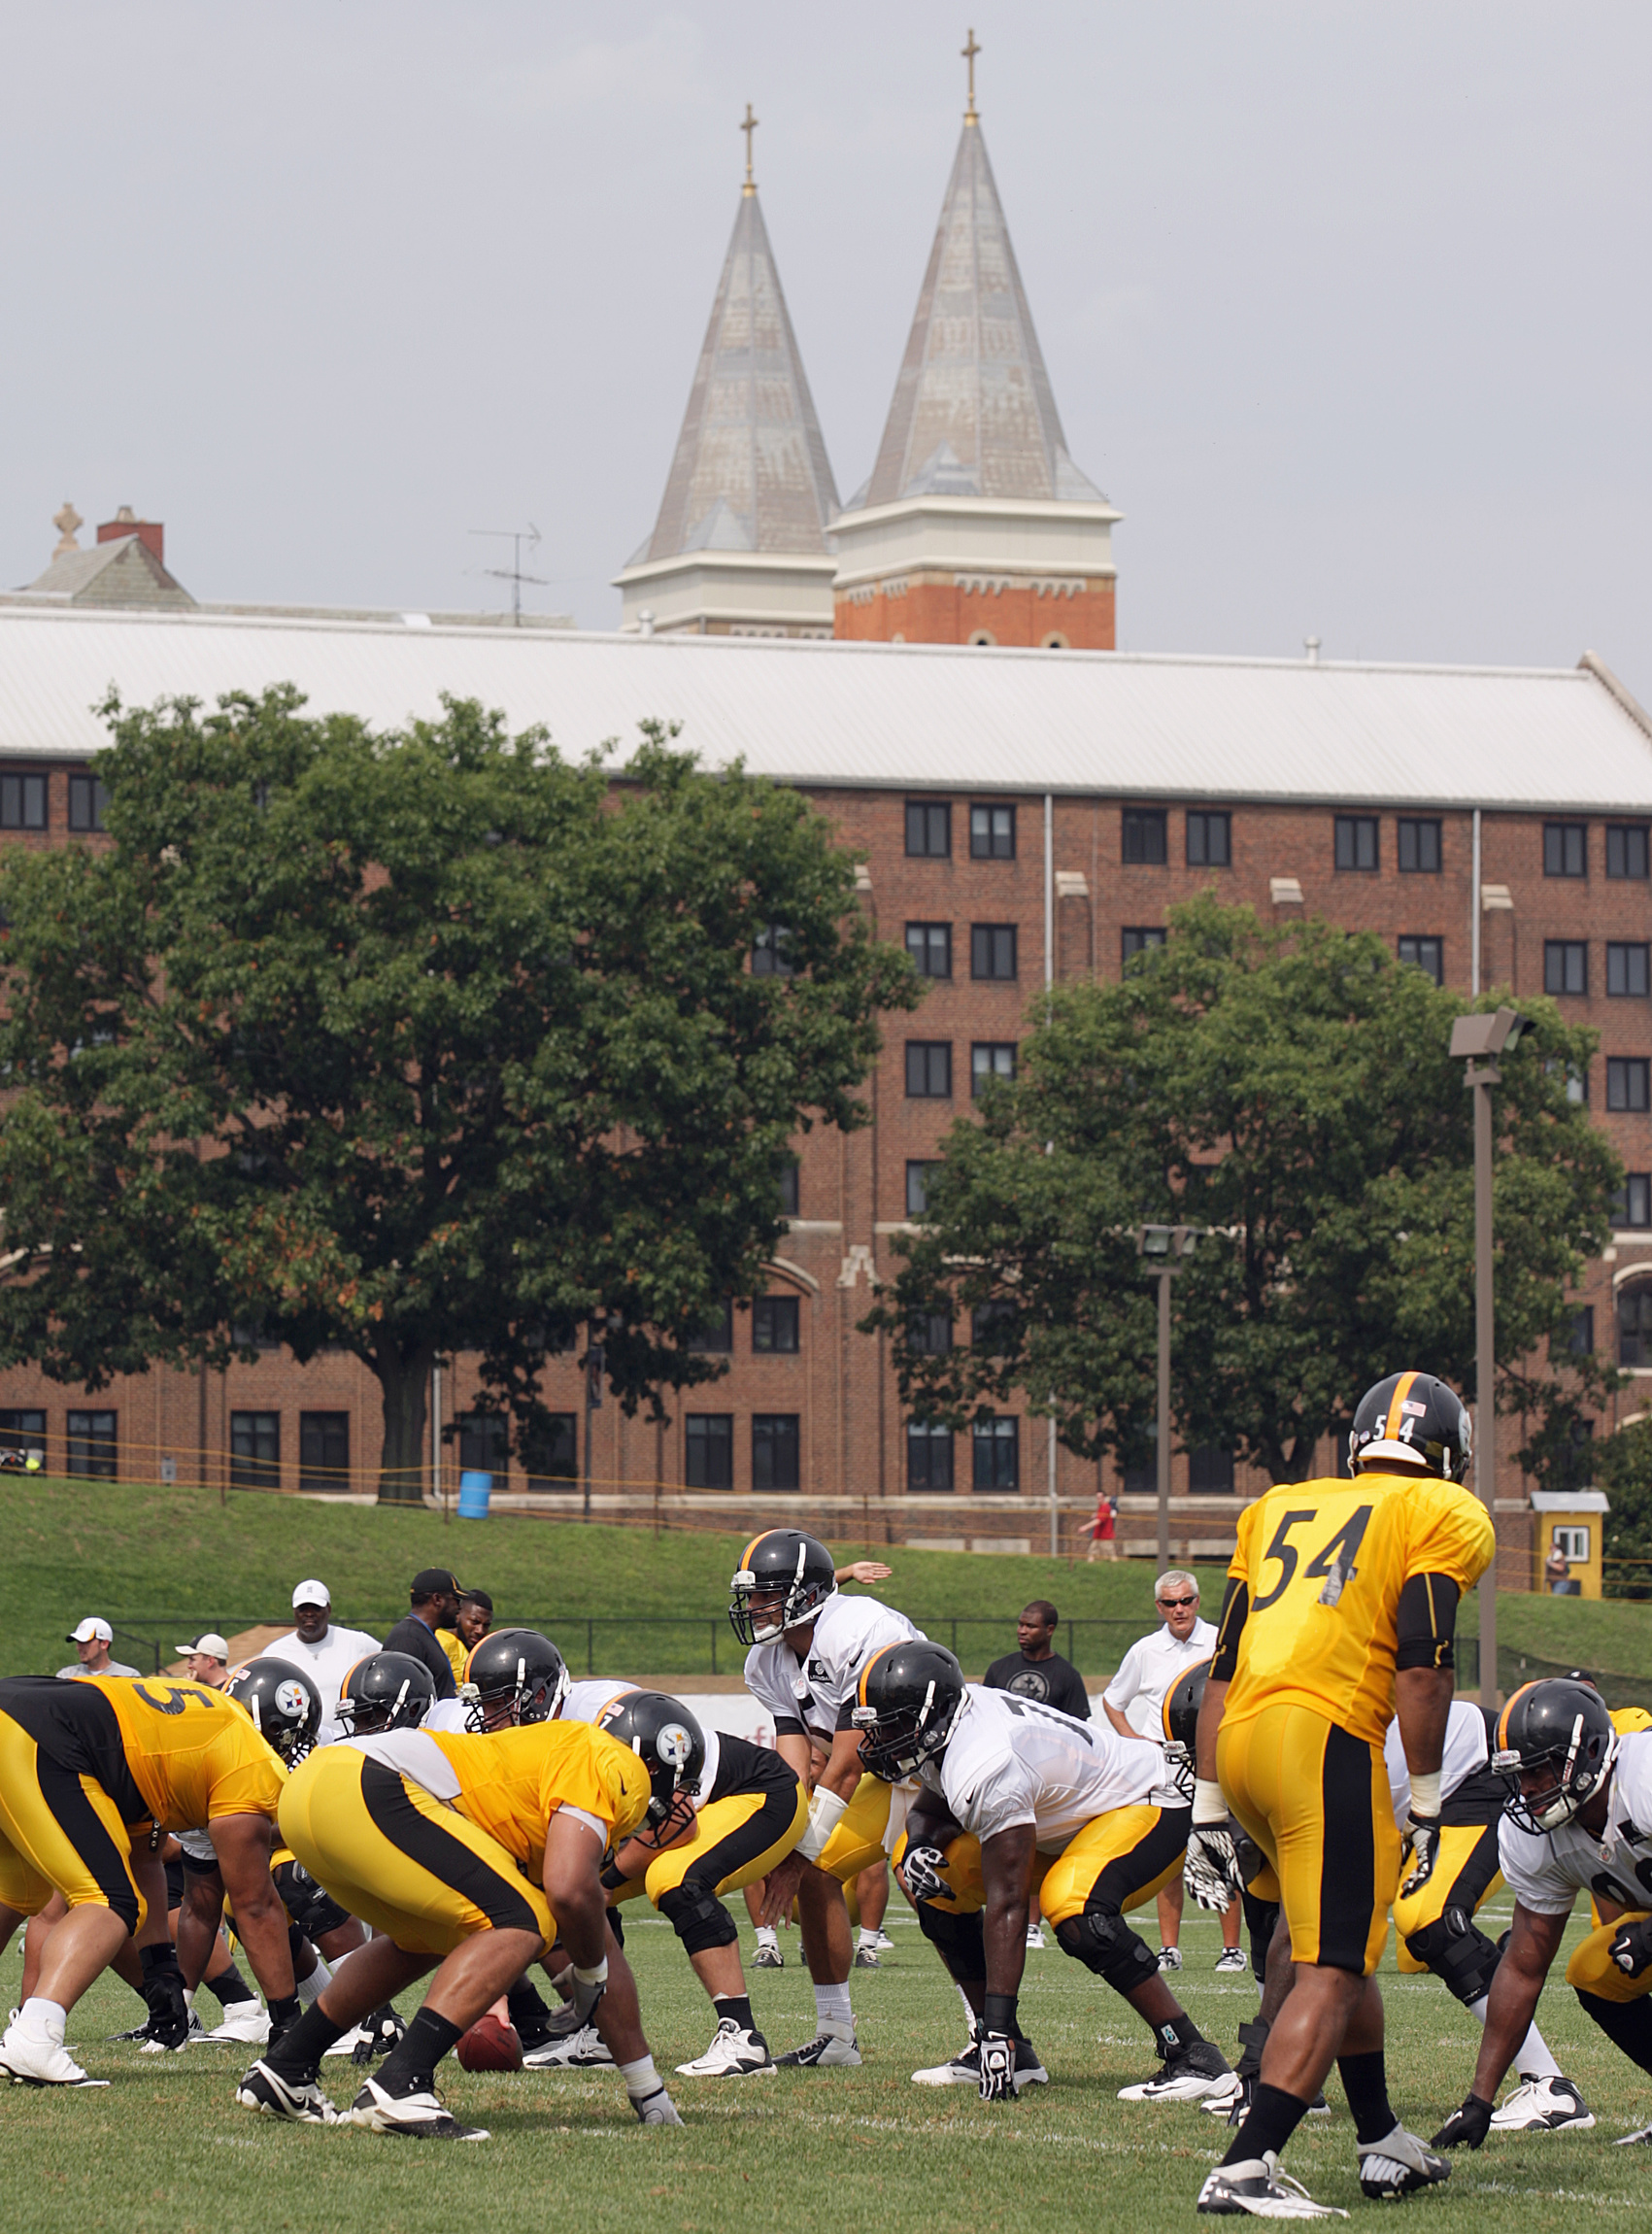 Steeples of St. Vincent Basilica seen in the distance during the Pittsburgh Steelers football training camp at Pennsylvania college